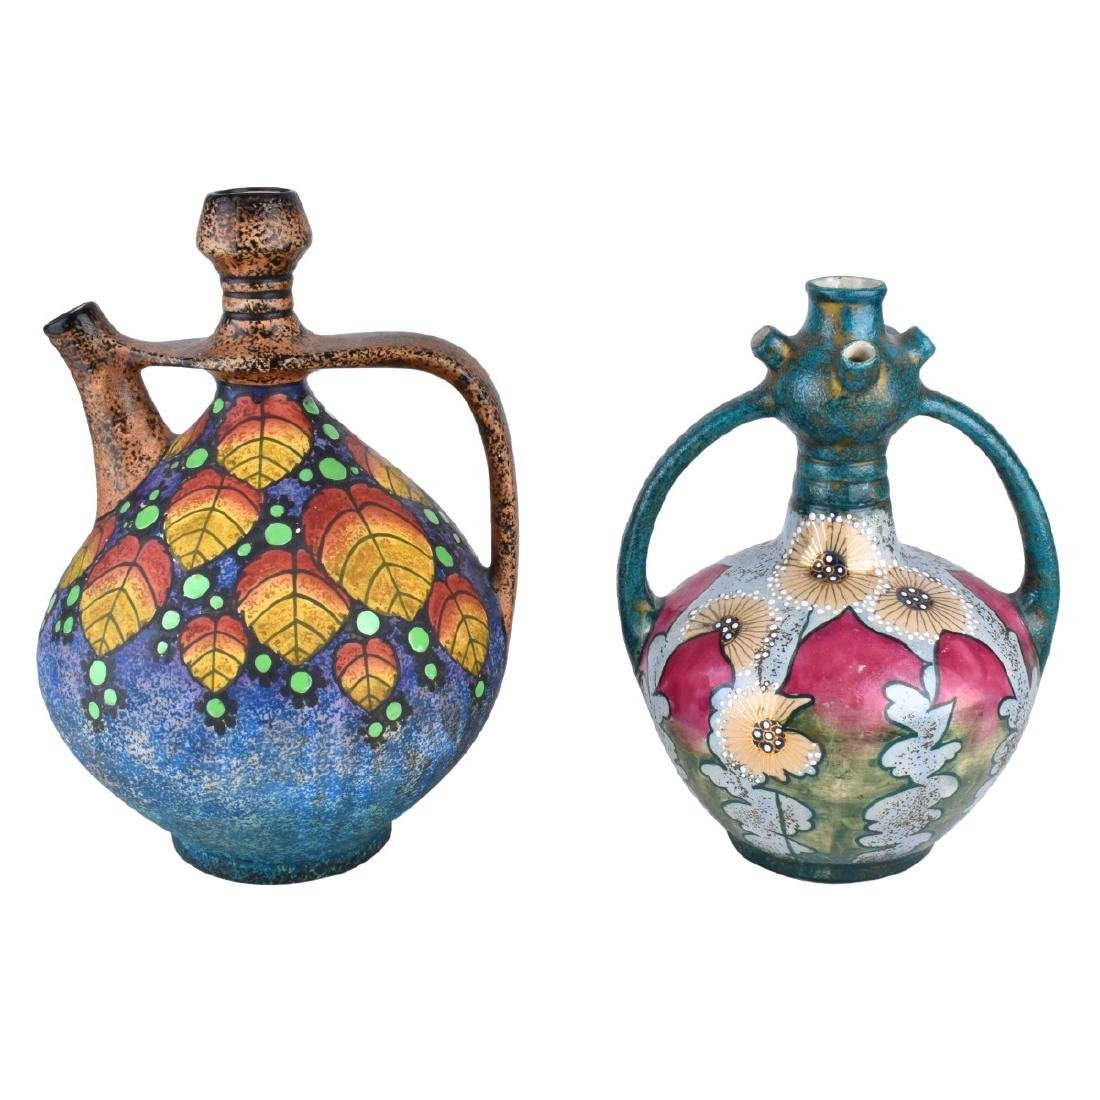 Two Piece Amphora Lot by Paul Dachsel